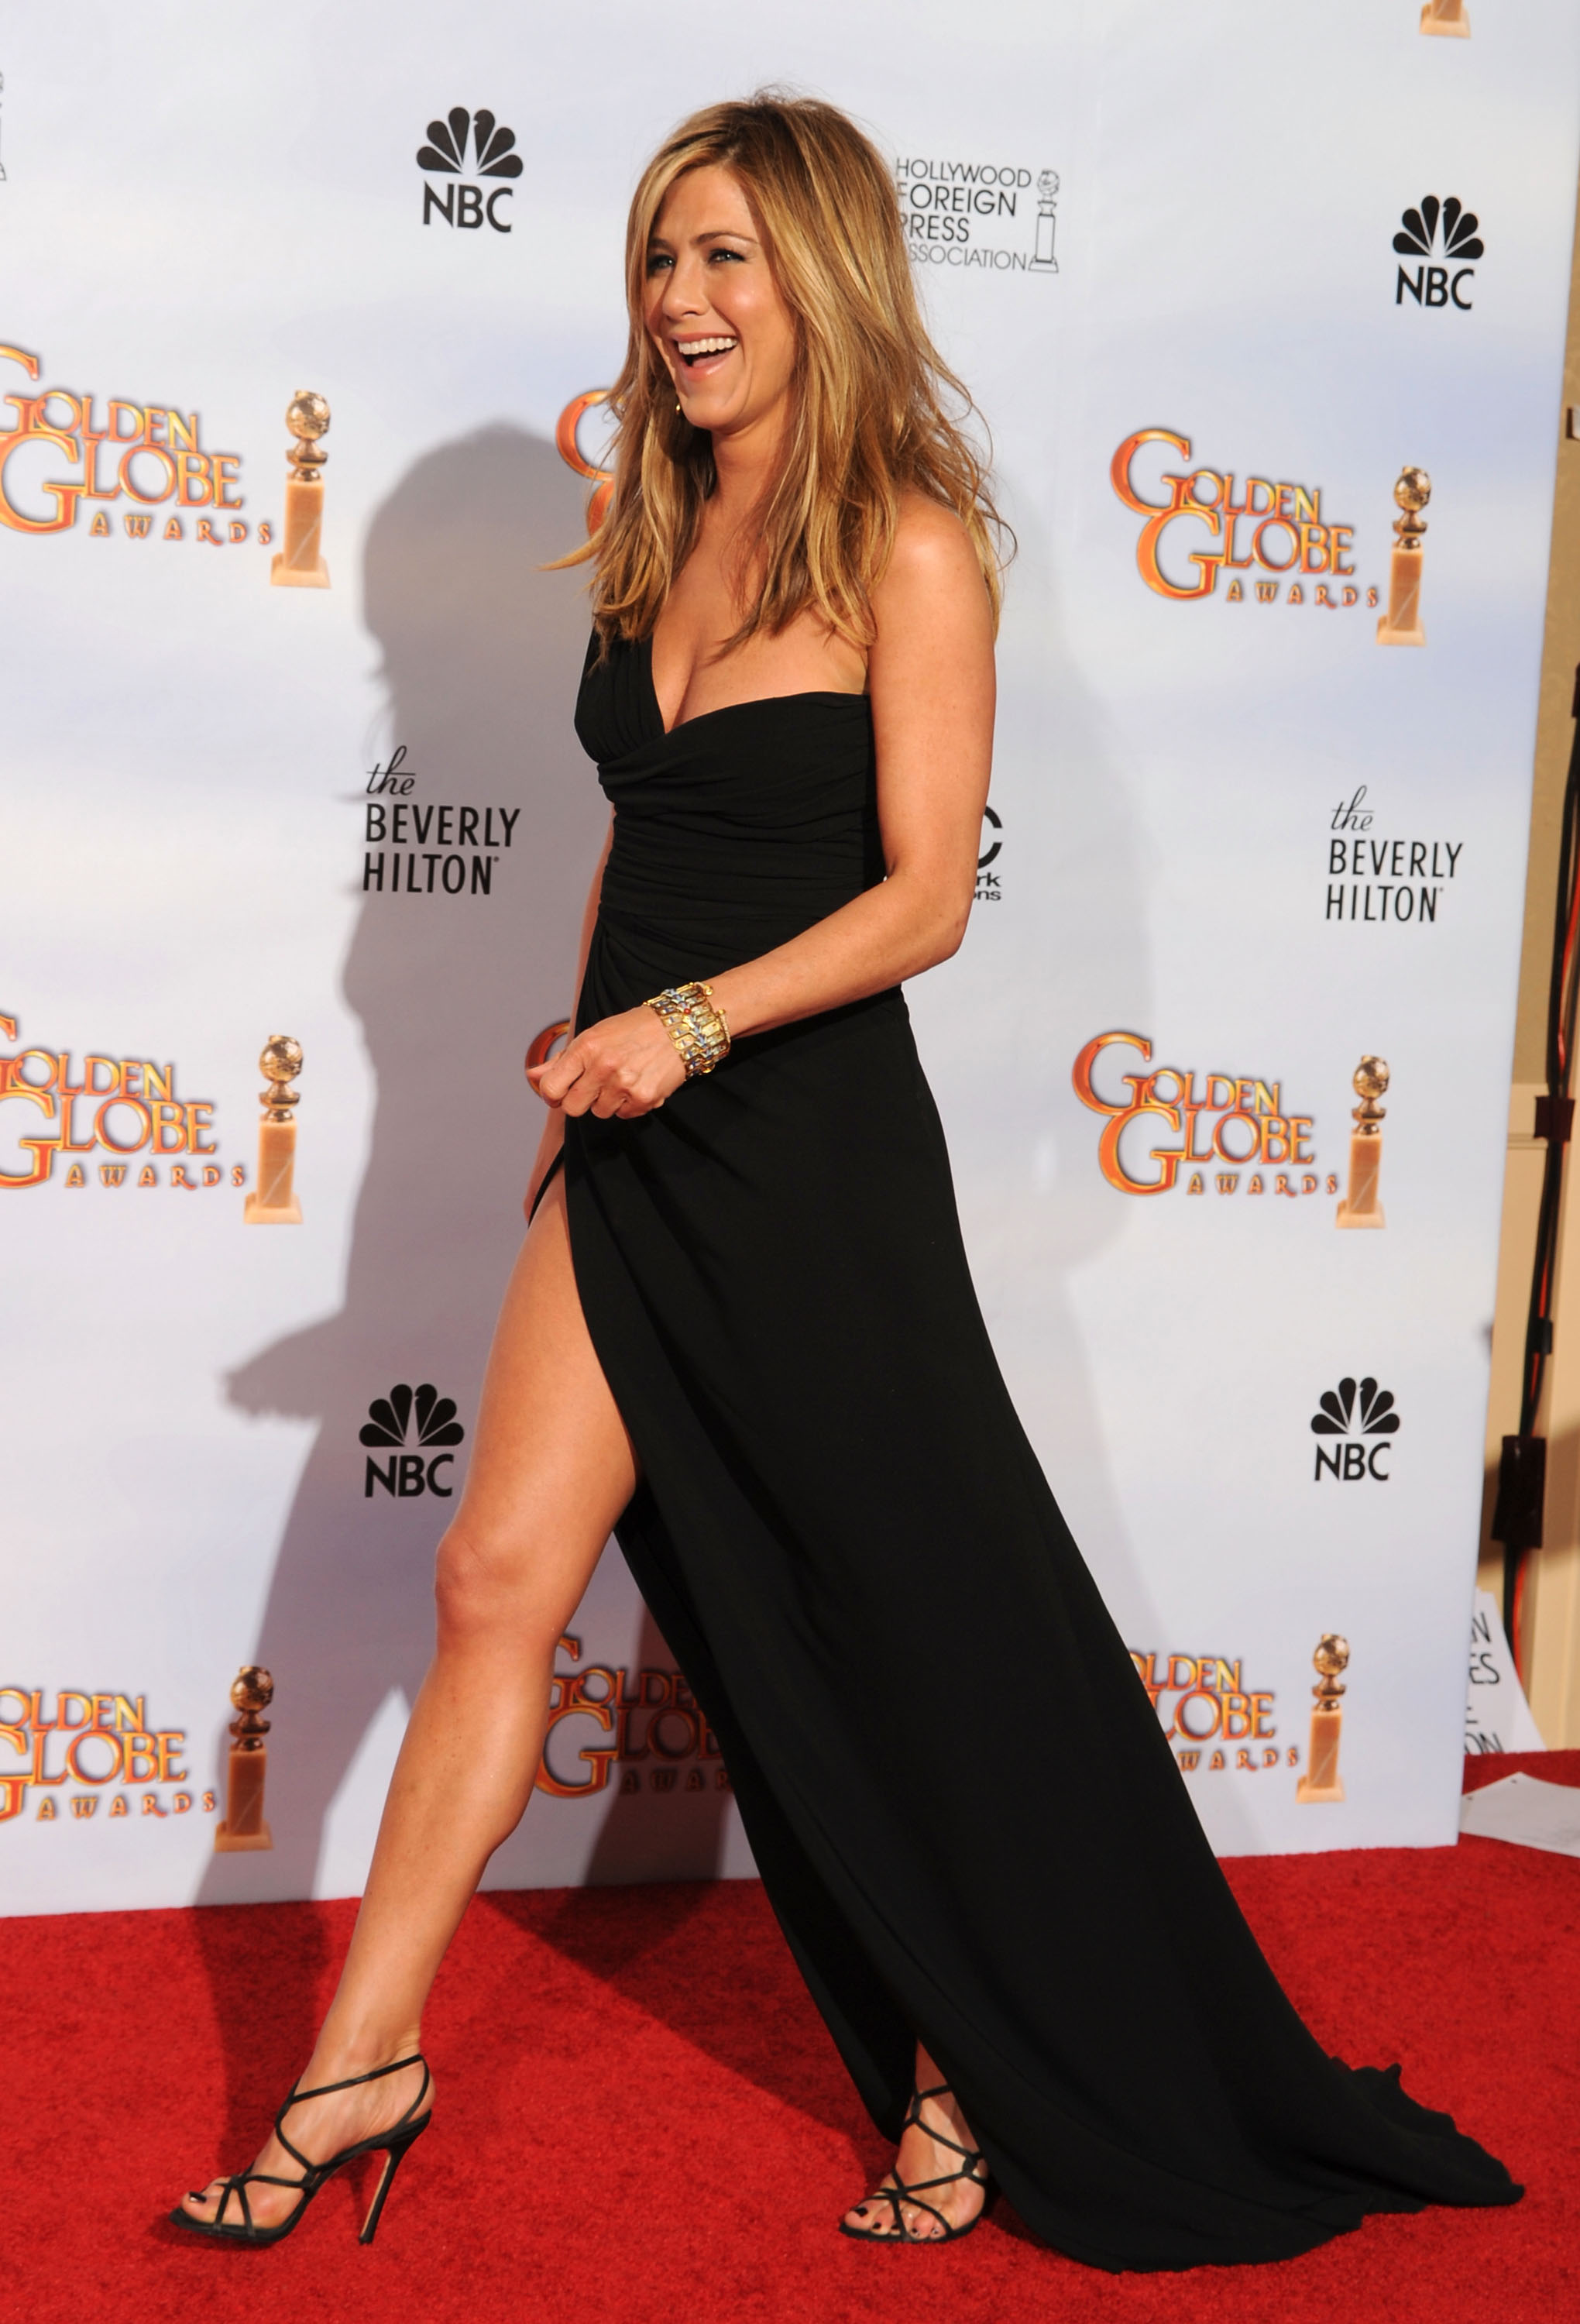 Hairy legs golden globe opinion